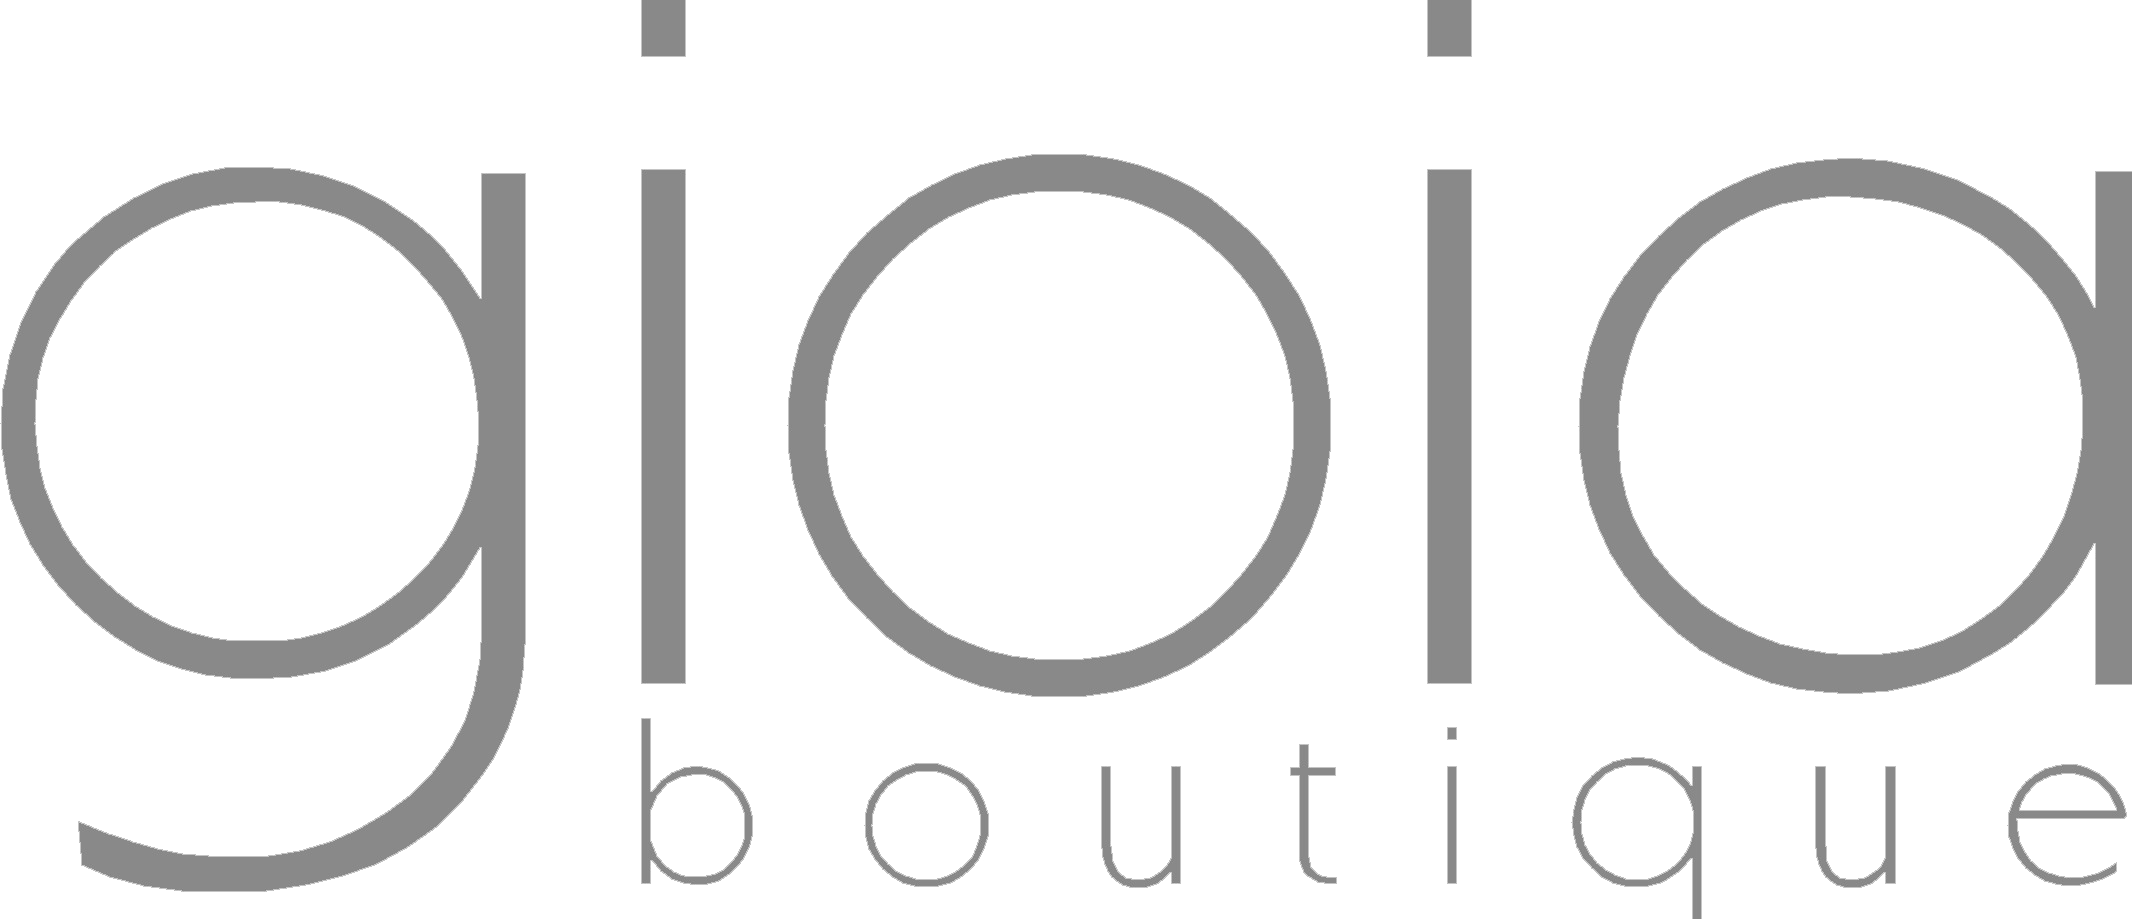 Gioia Boutique (2016) Ltd